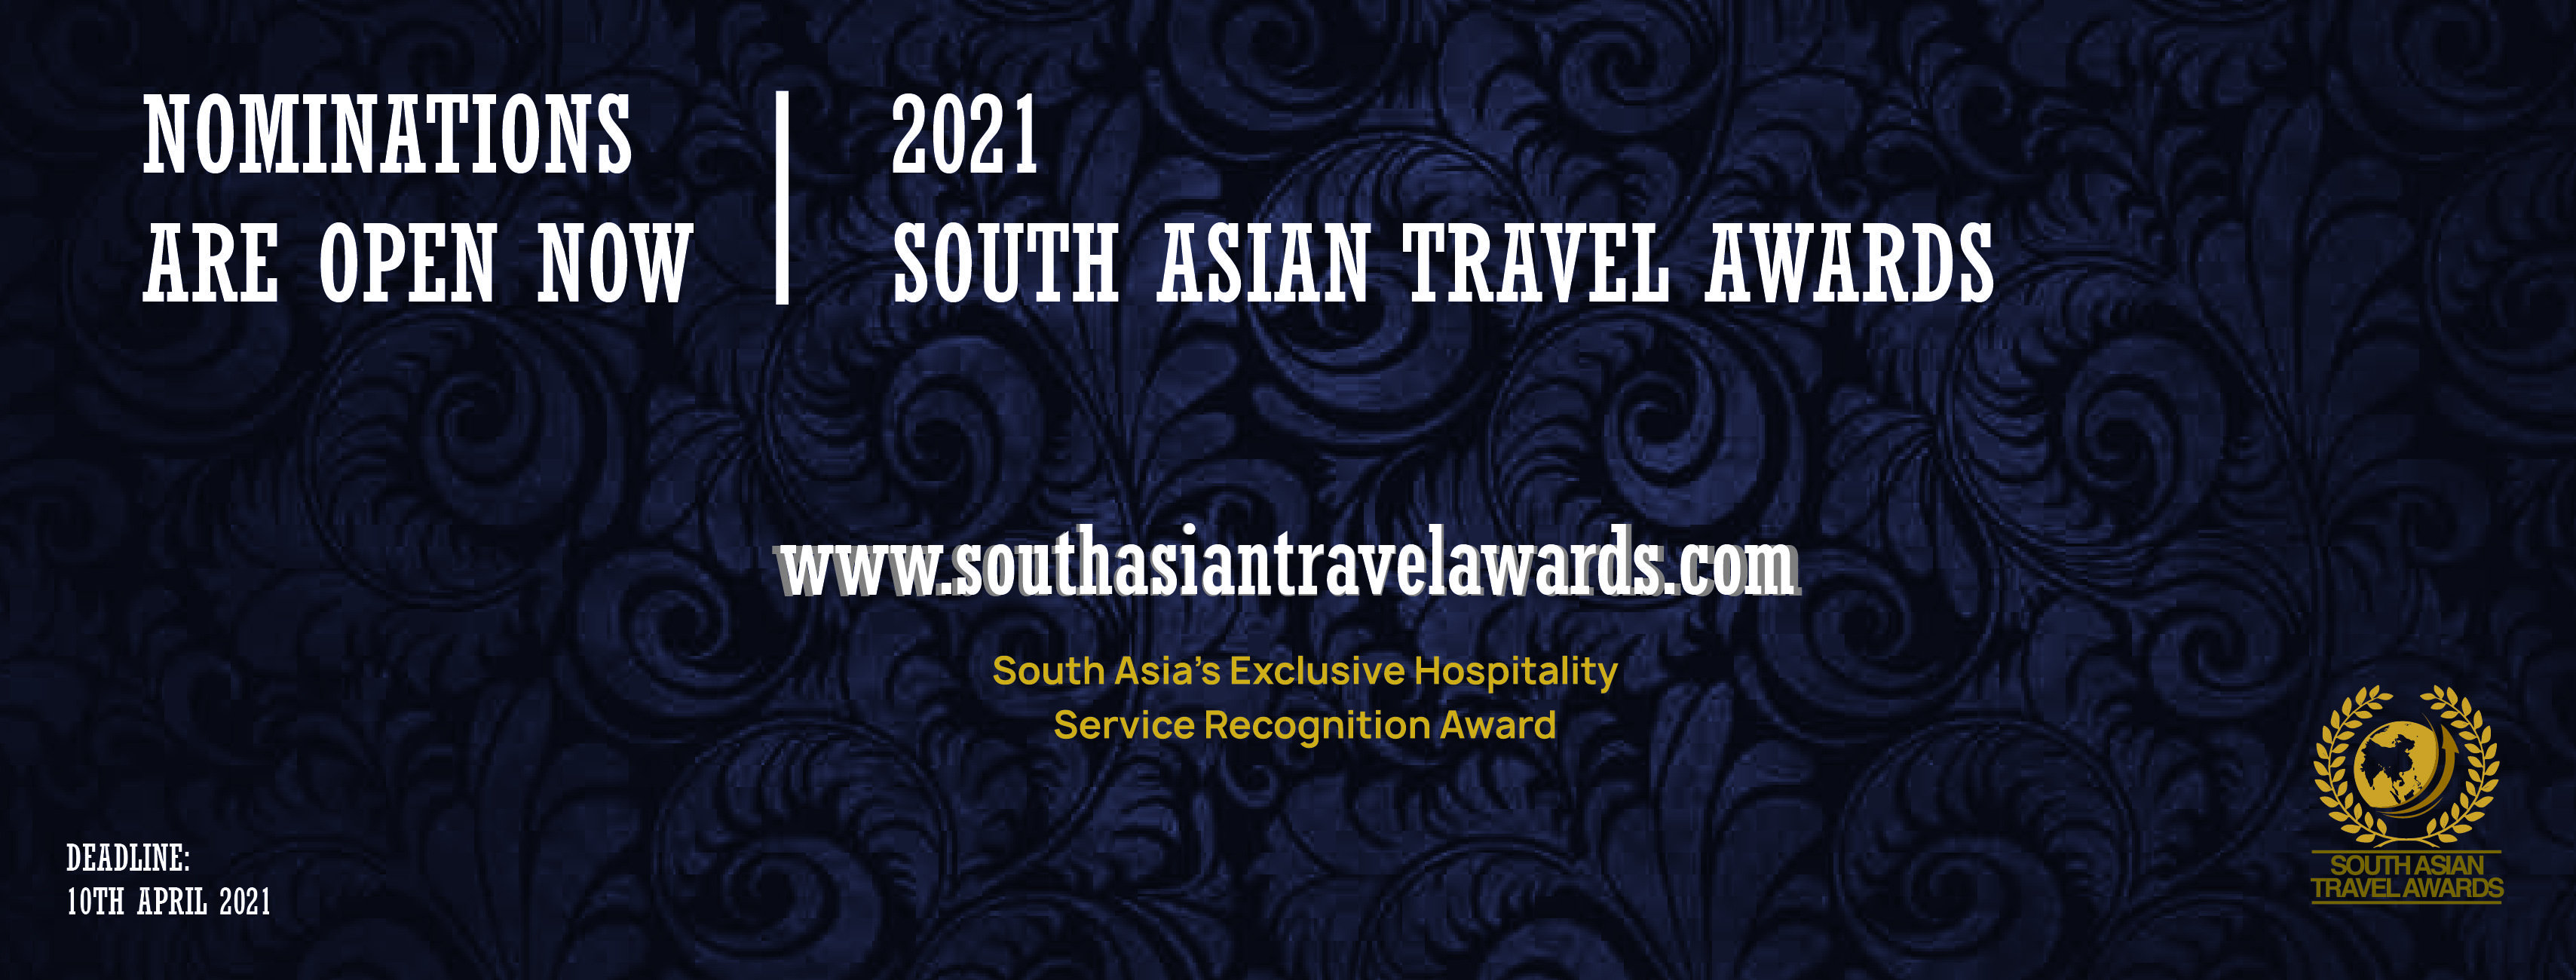 SOUTH ASIAN TRAVEL AWARDS OPENS NOMINATIONS FOR 2021